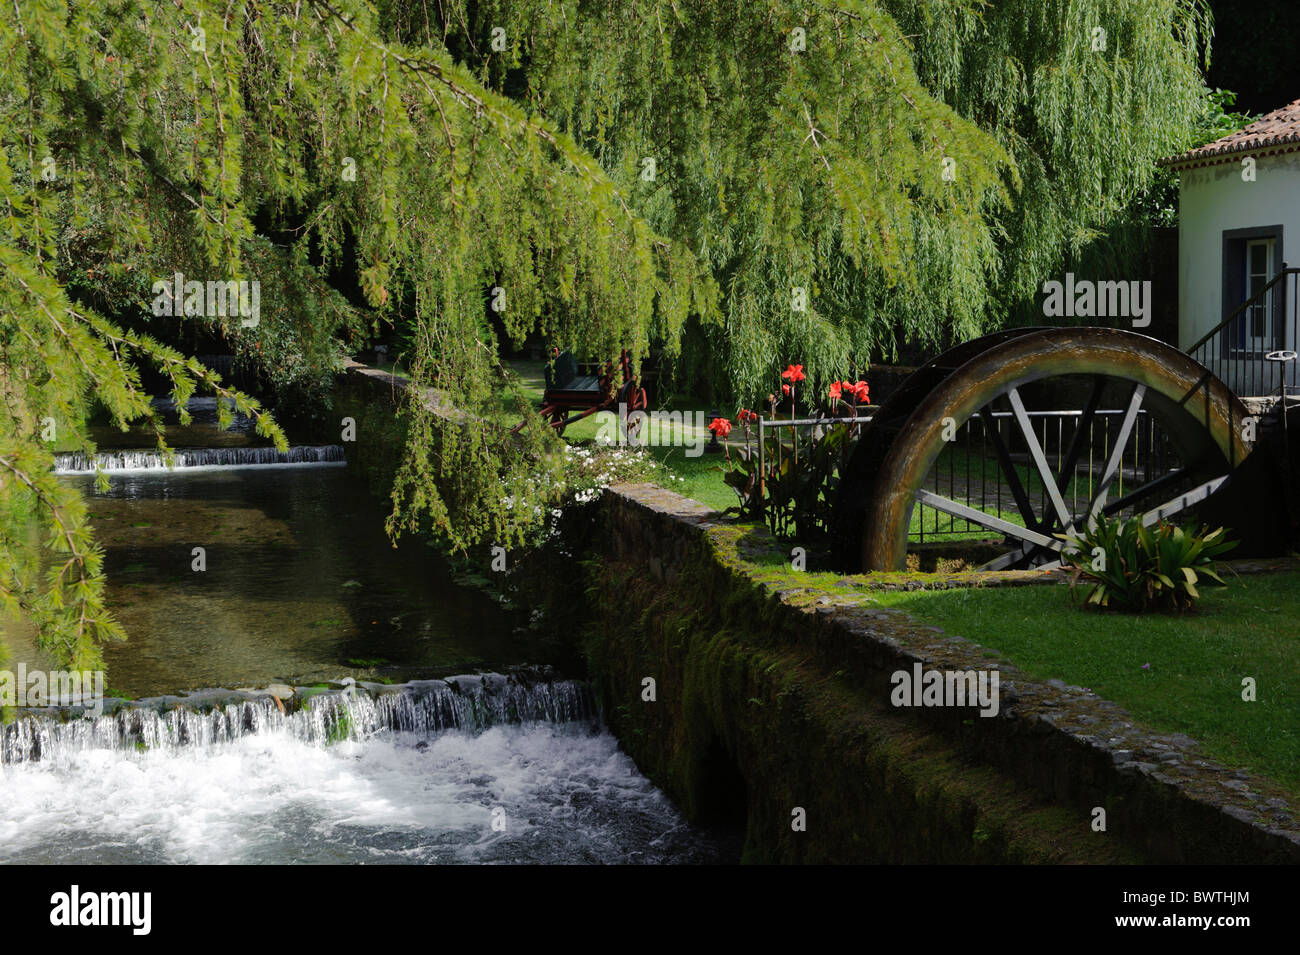 Water-mill in Furnas, Isle of Sao Miguel - Stock Image